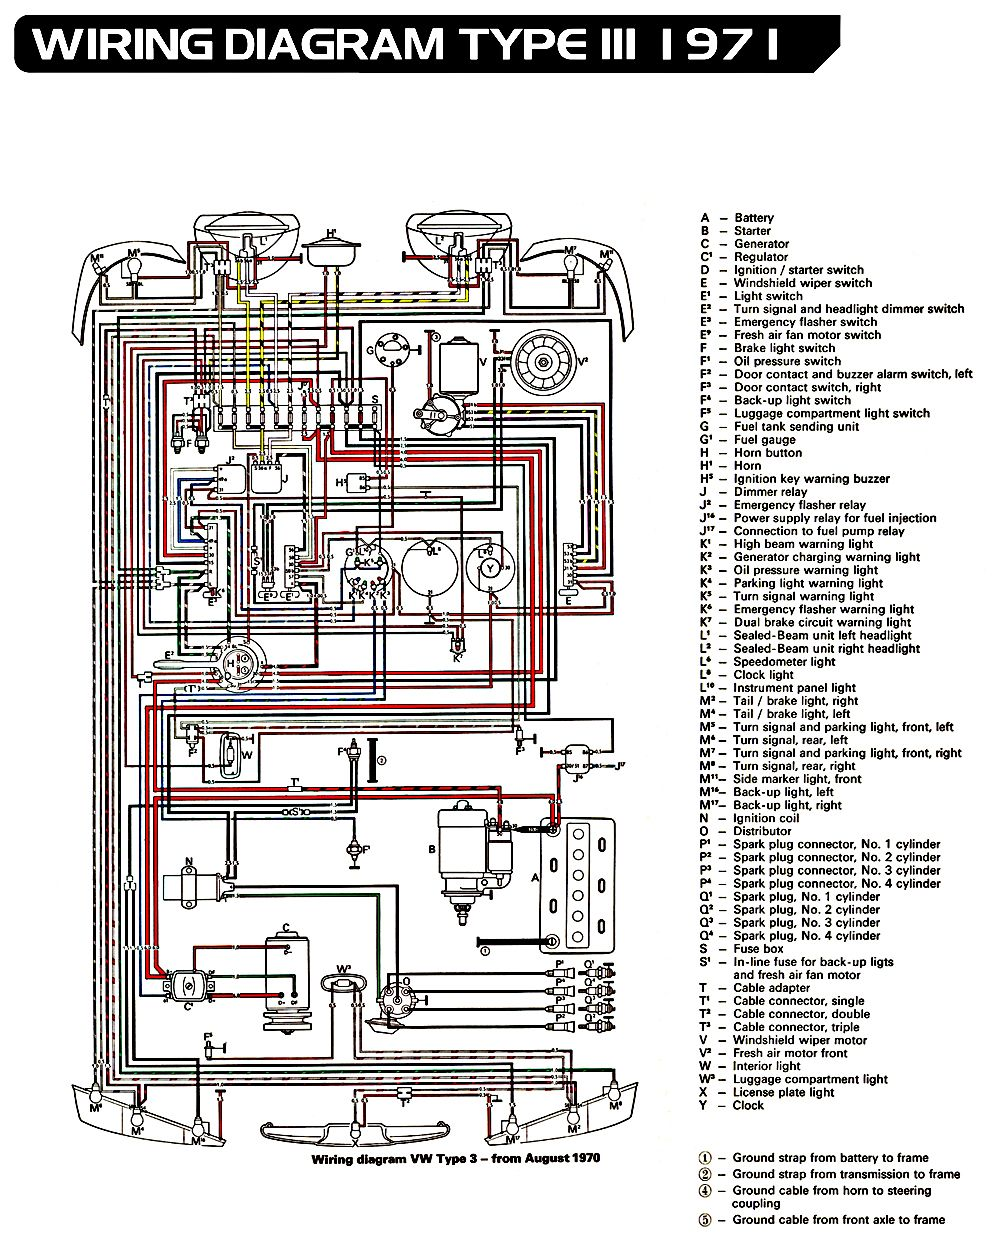 1971 Type 3 Vw Wiring Diagram So Simple Compared To A Modern Ecu Enabled Car Vochos Clasicos Vw Vocho Vocho